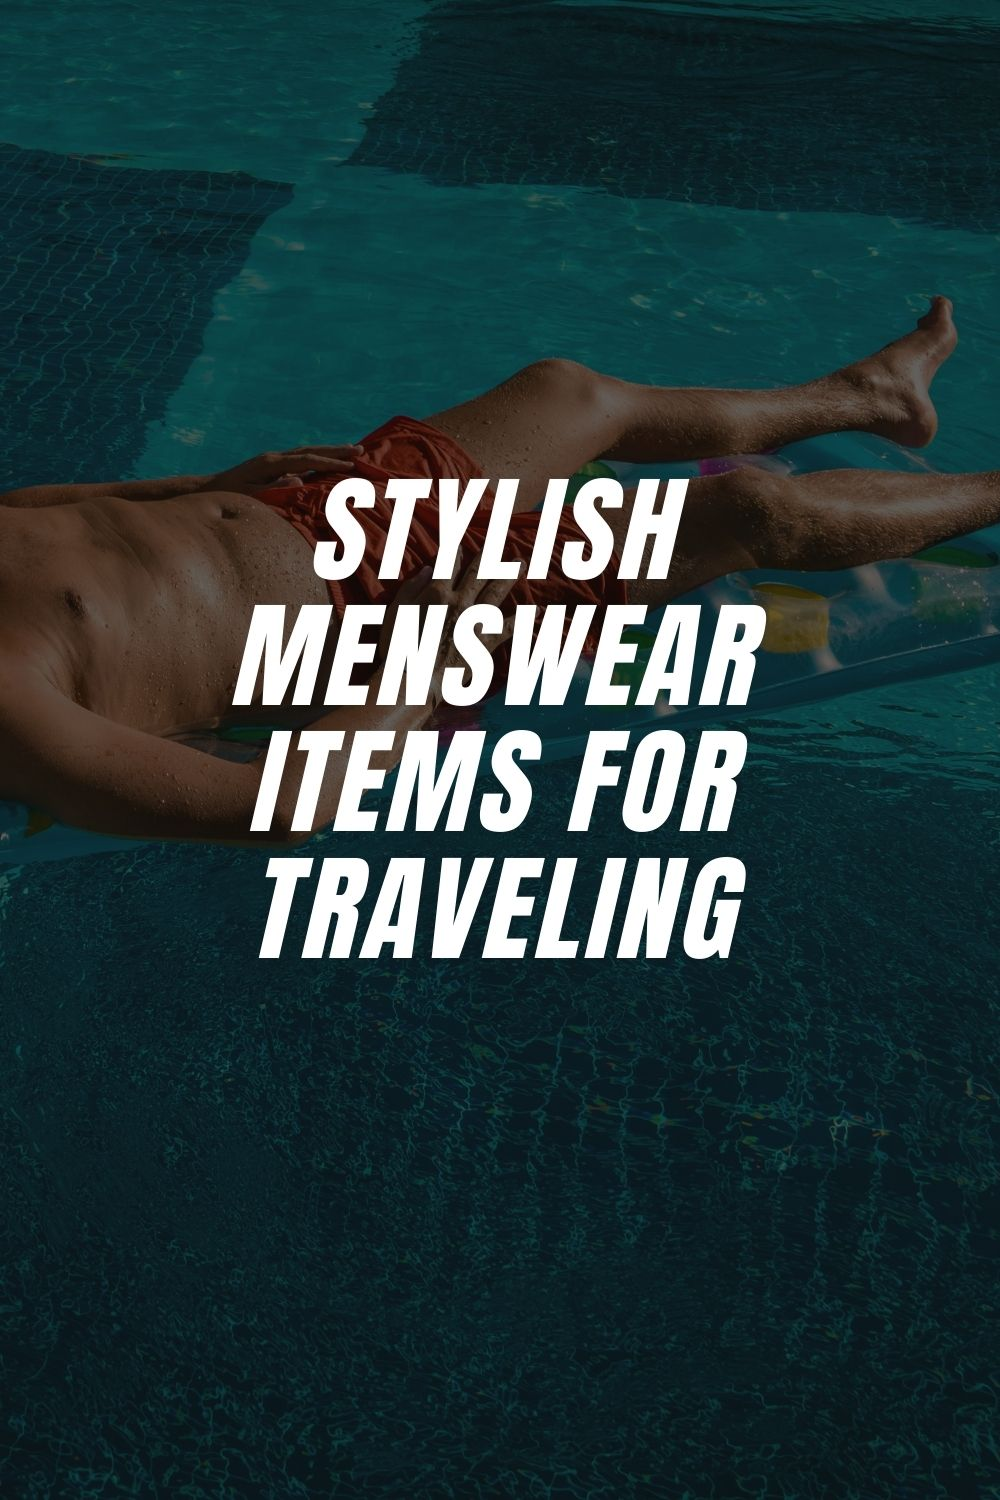 Stylish Menswear Items for Traveling